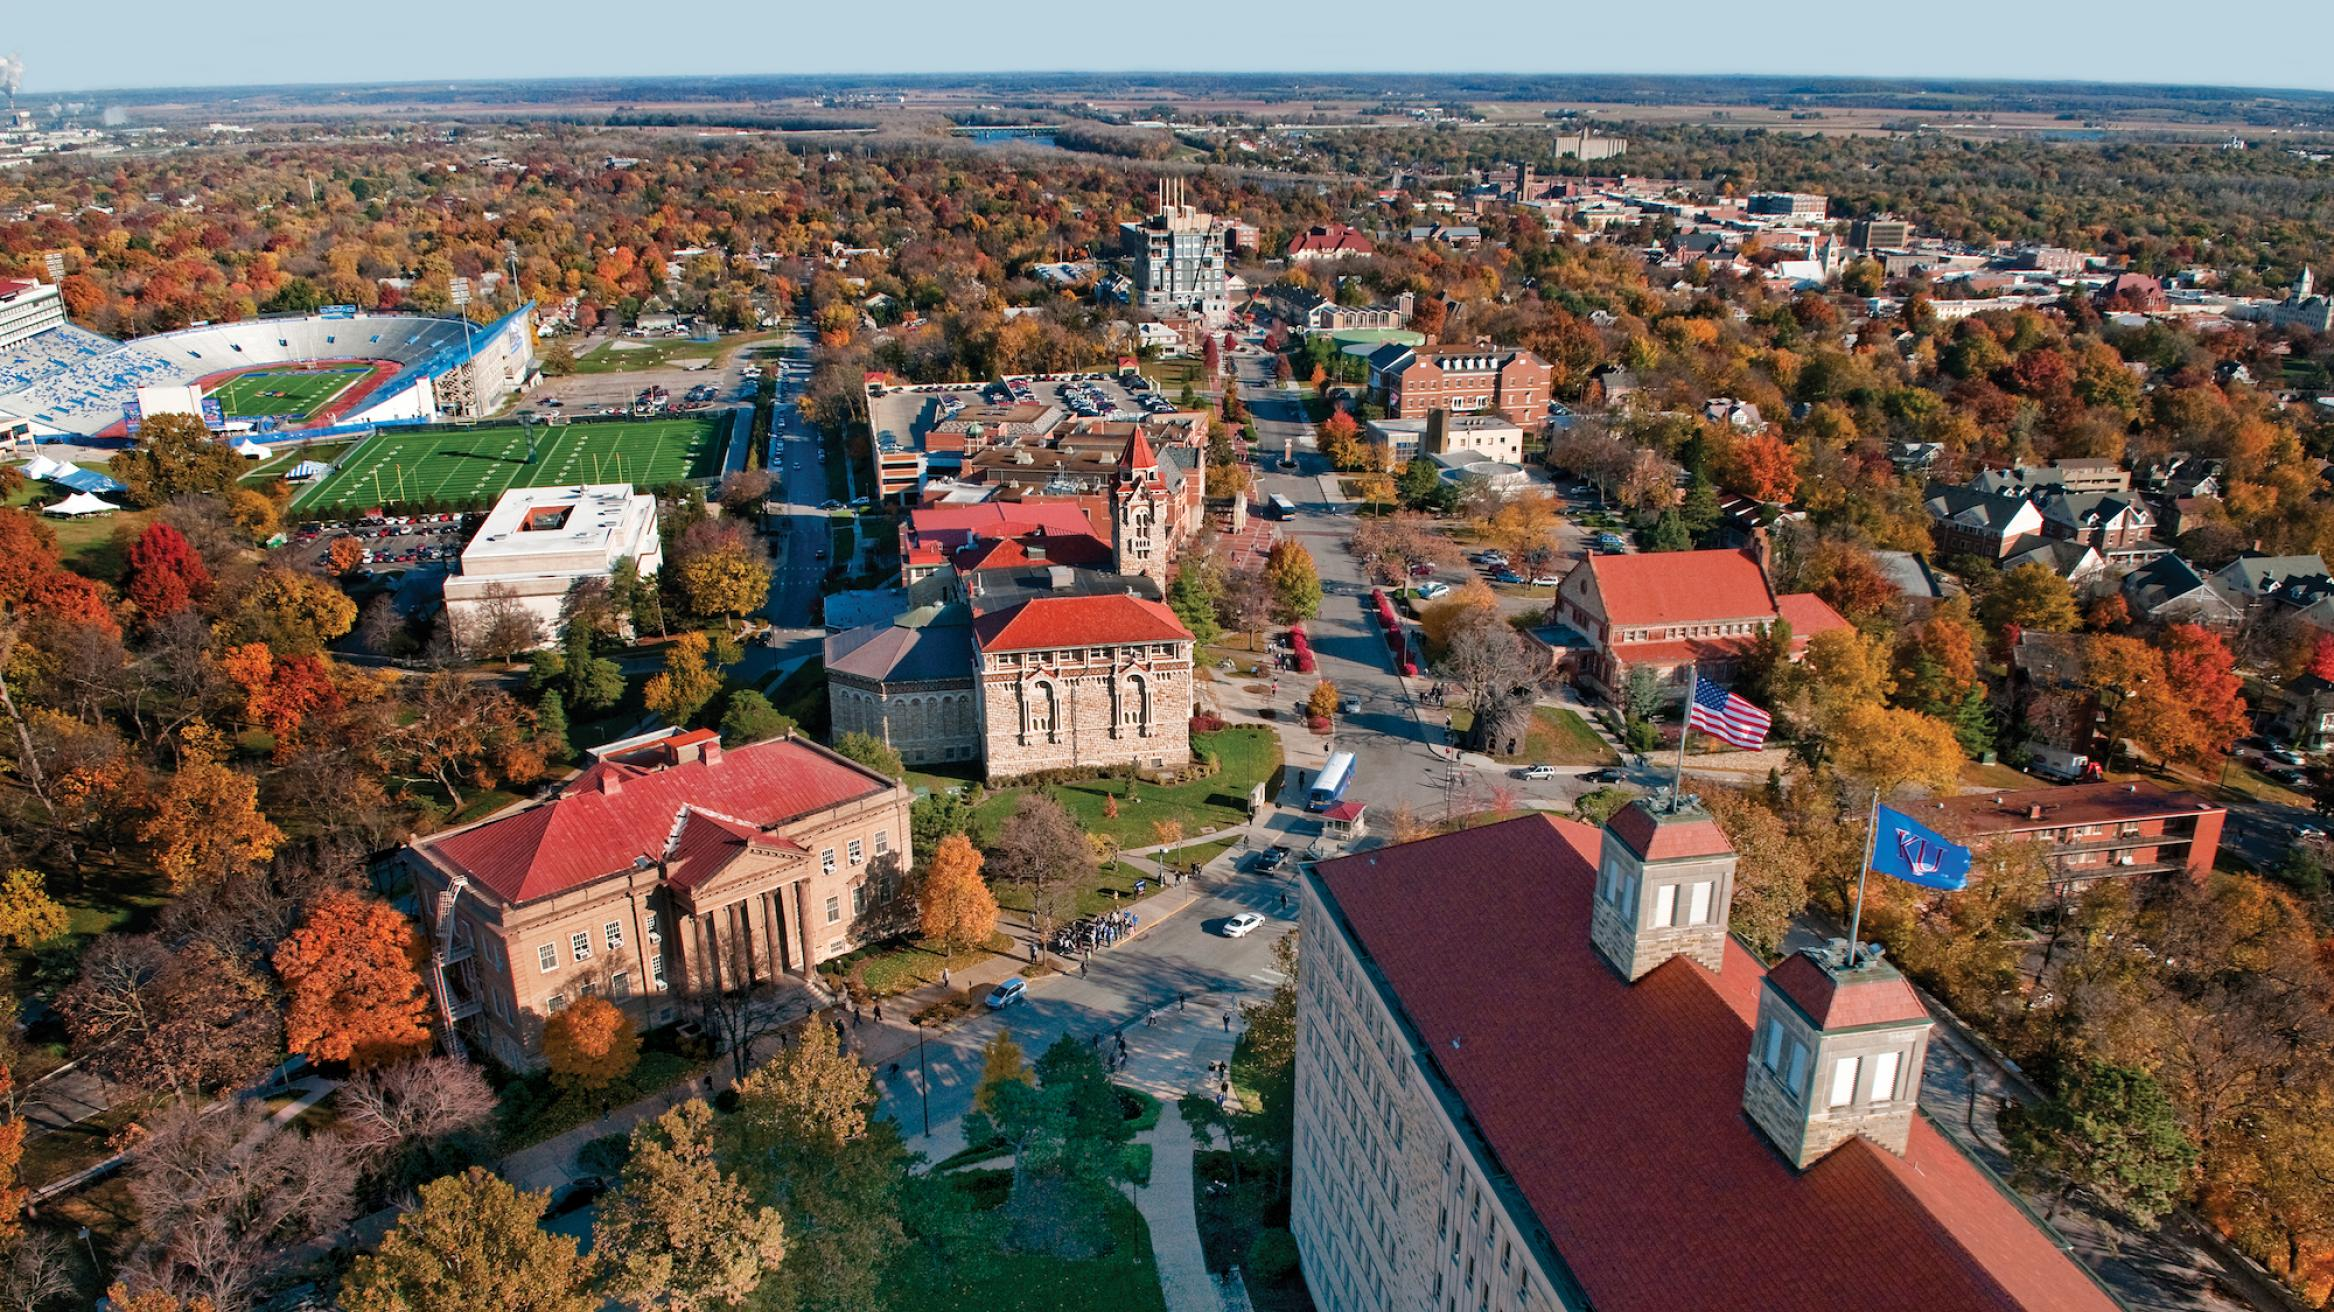 Aerial View of the KU Campus Photo